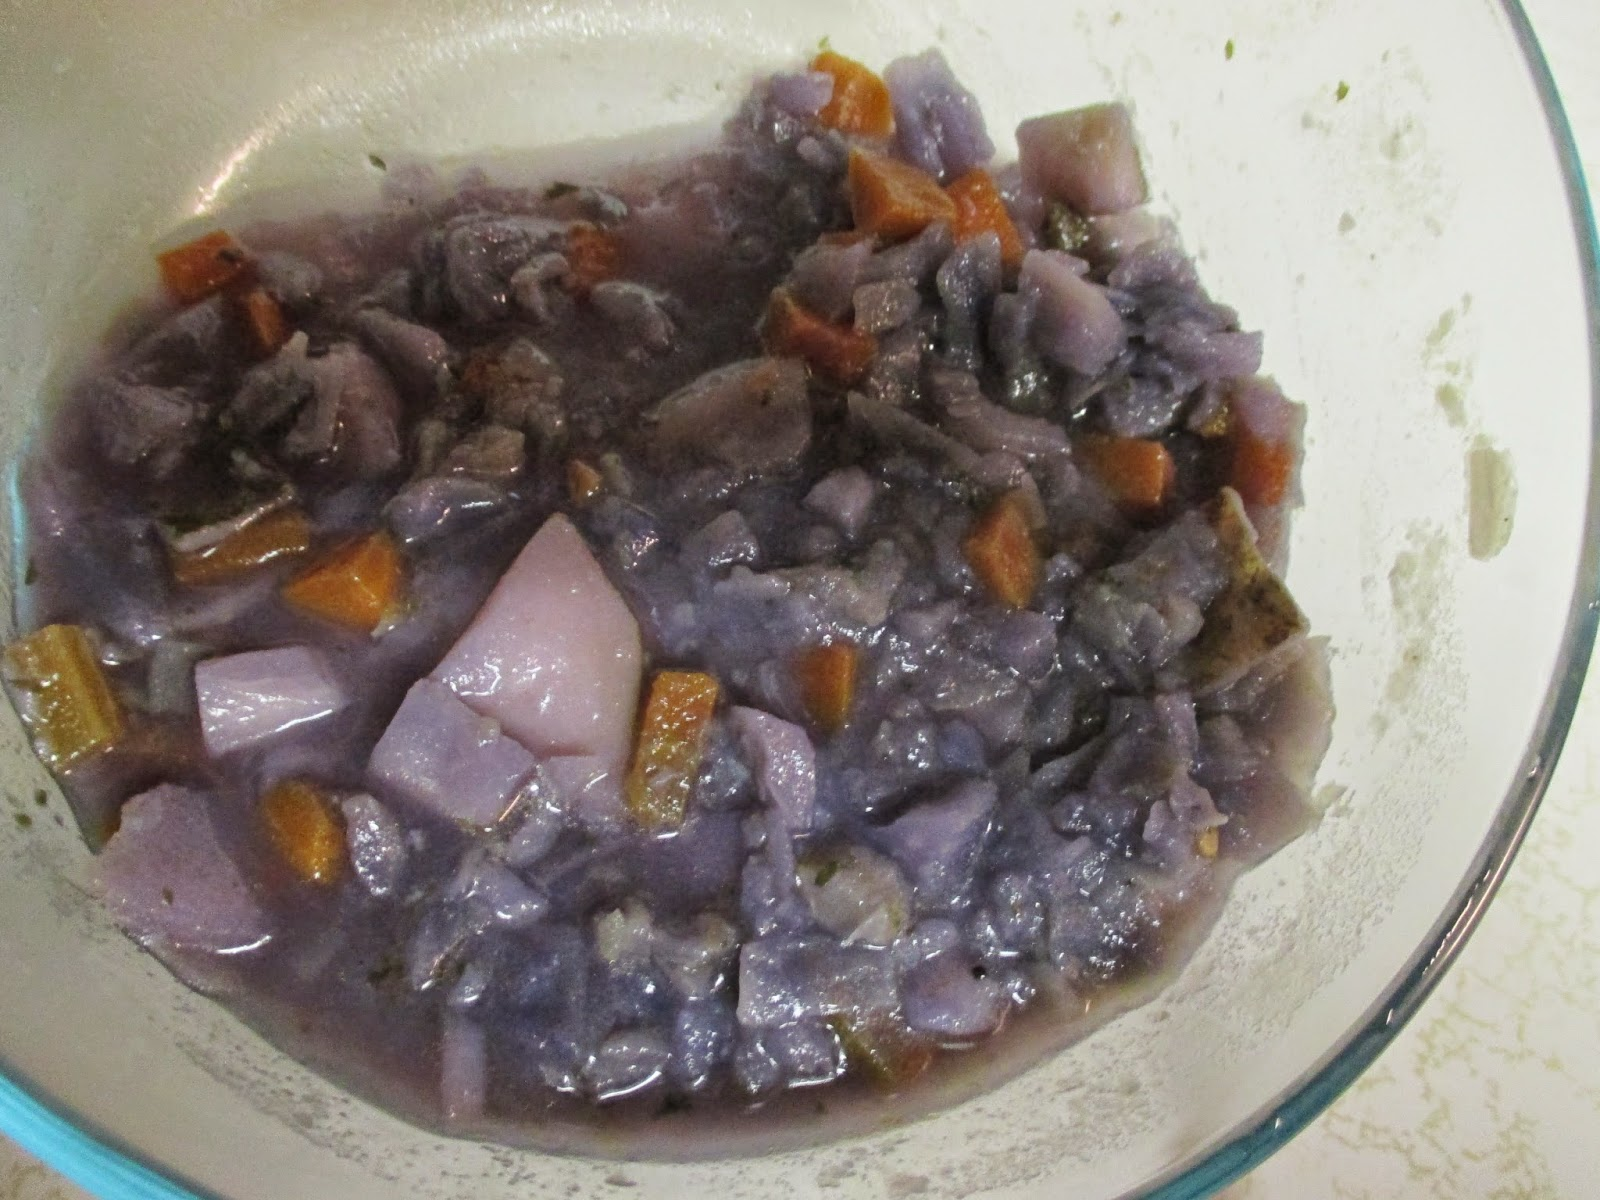 purple soup plus carrots